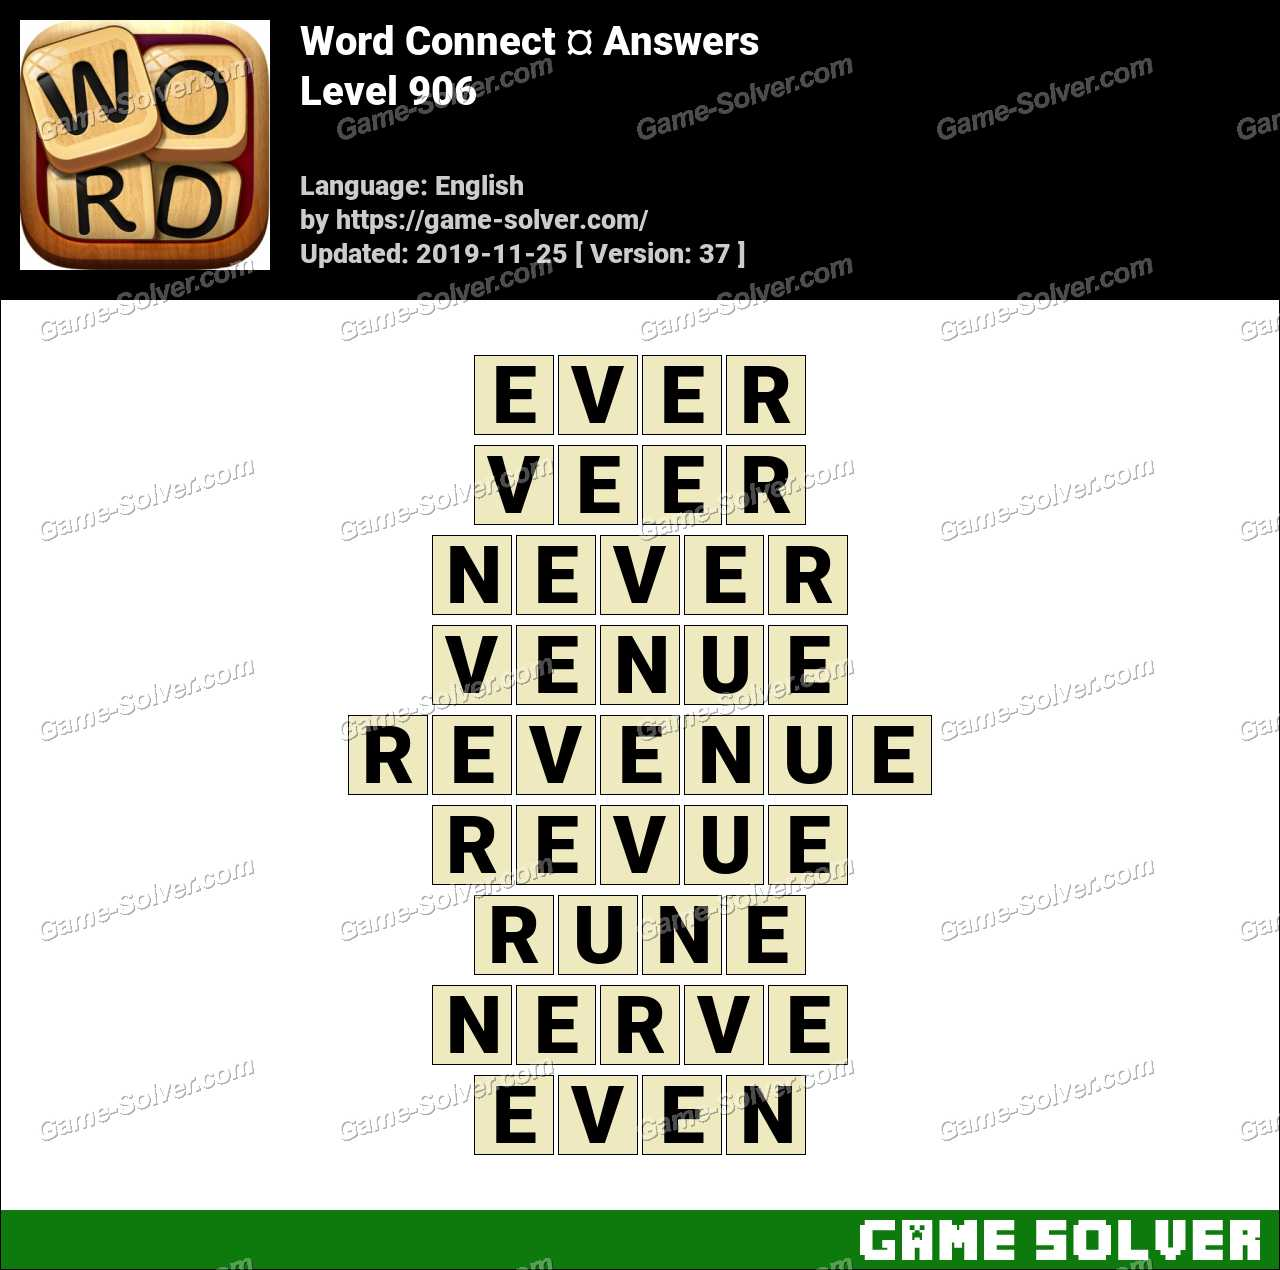 Word Connect Level 906 Answers